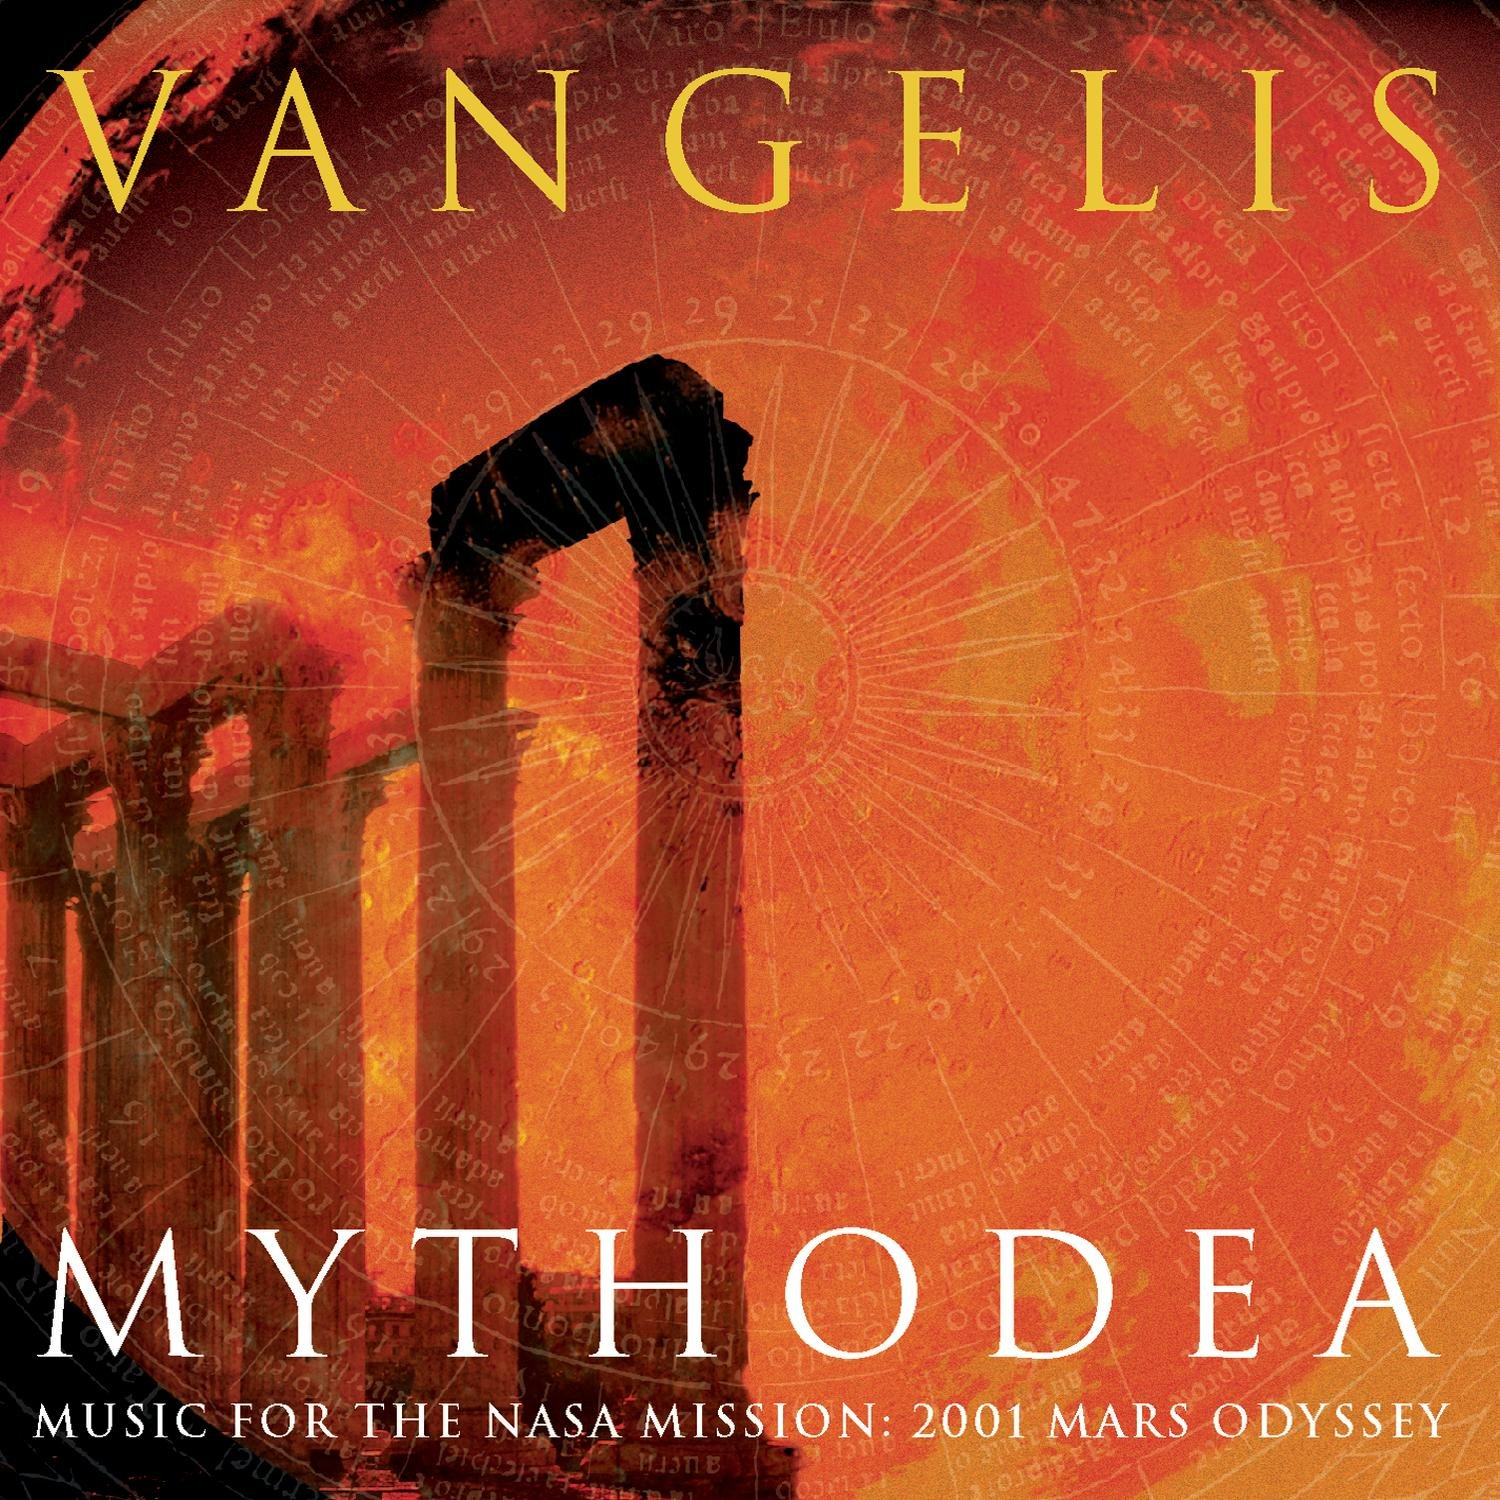 Mythodea: Music for the NASA Mission: 2001 Mars Odyssey by SONY MASTERWORKS